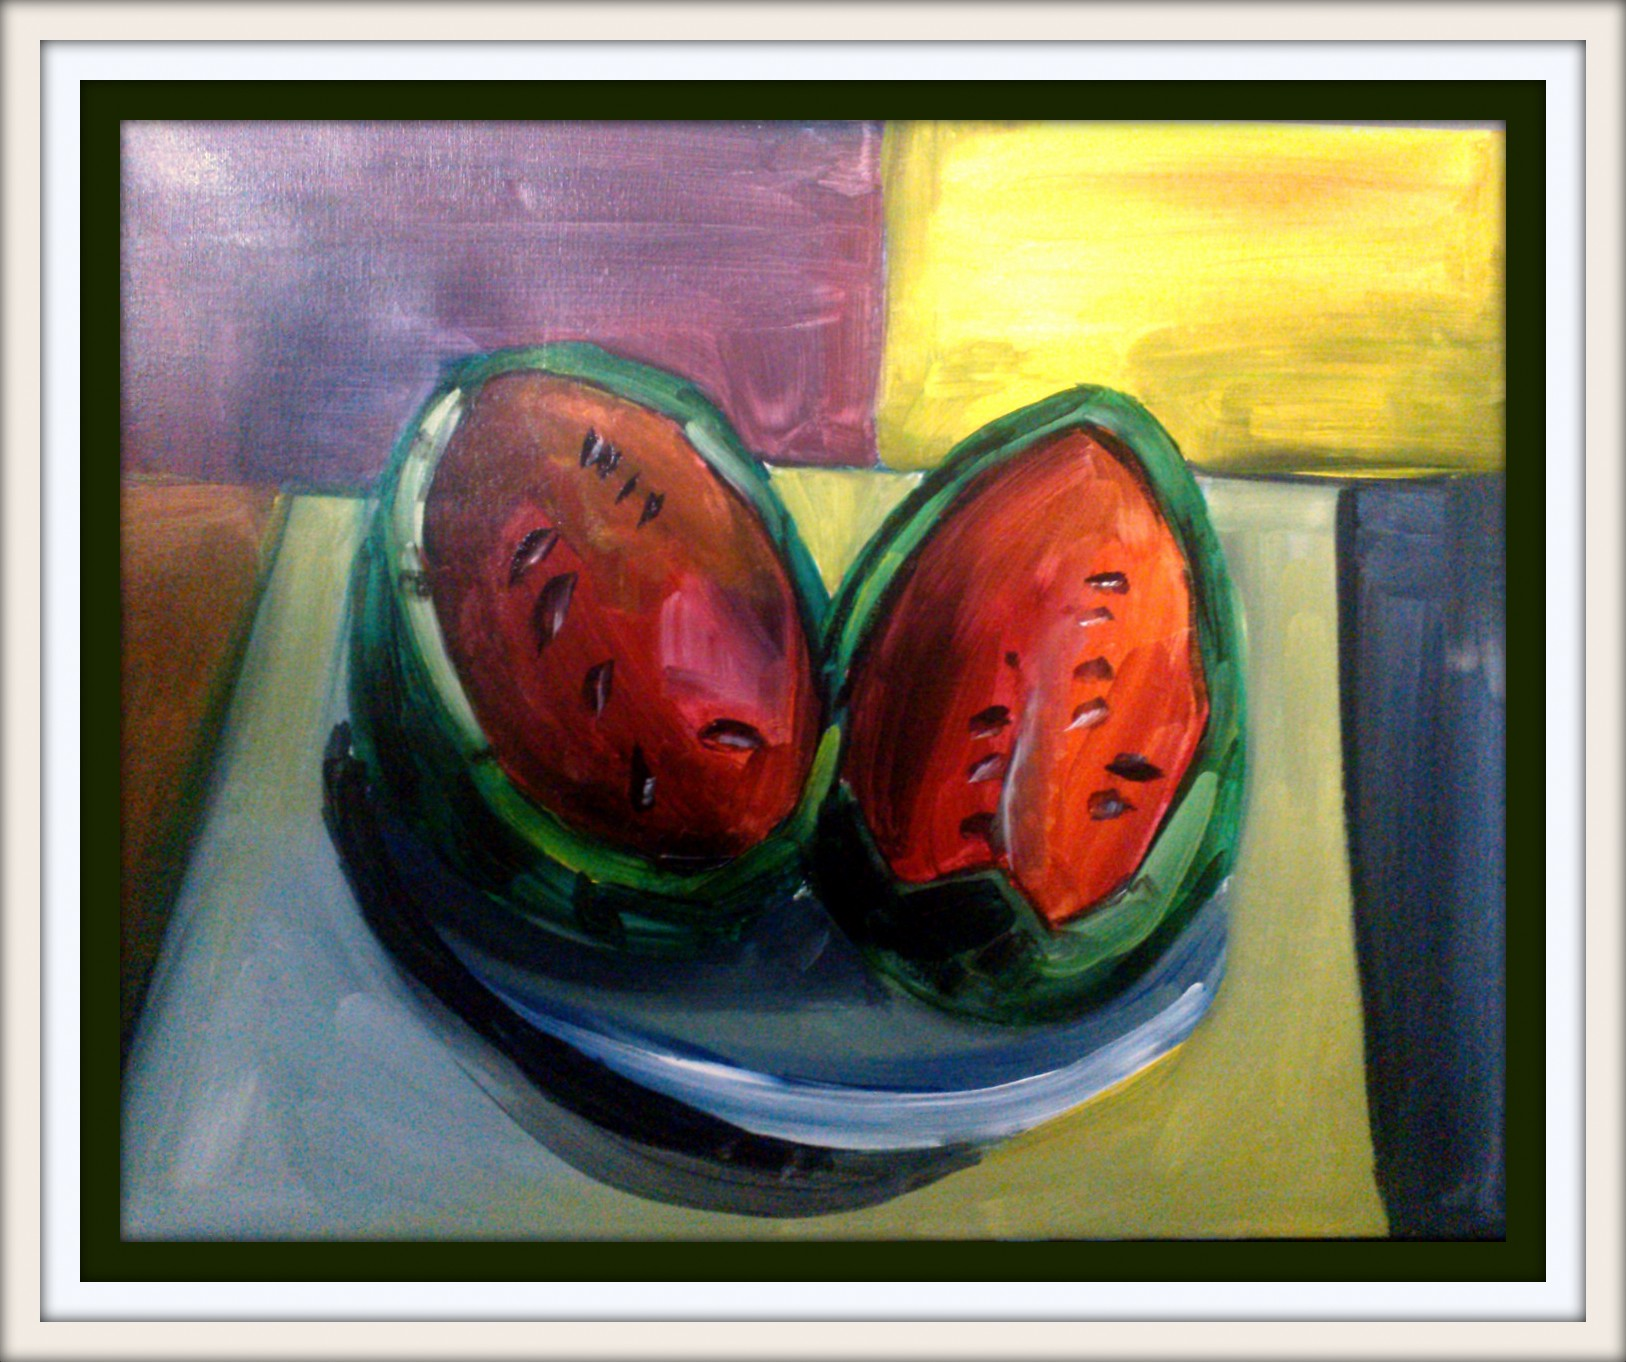 2013 – March 16 – Still life in style of Impressionism